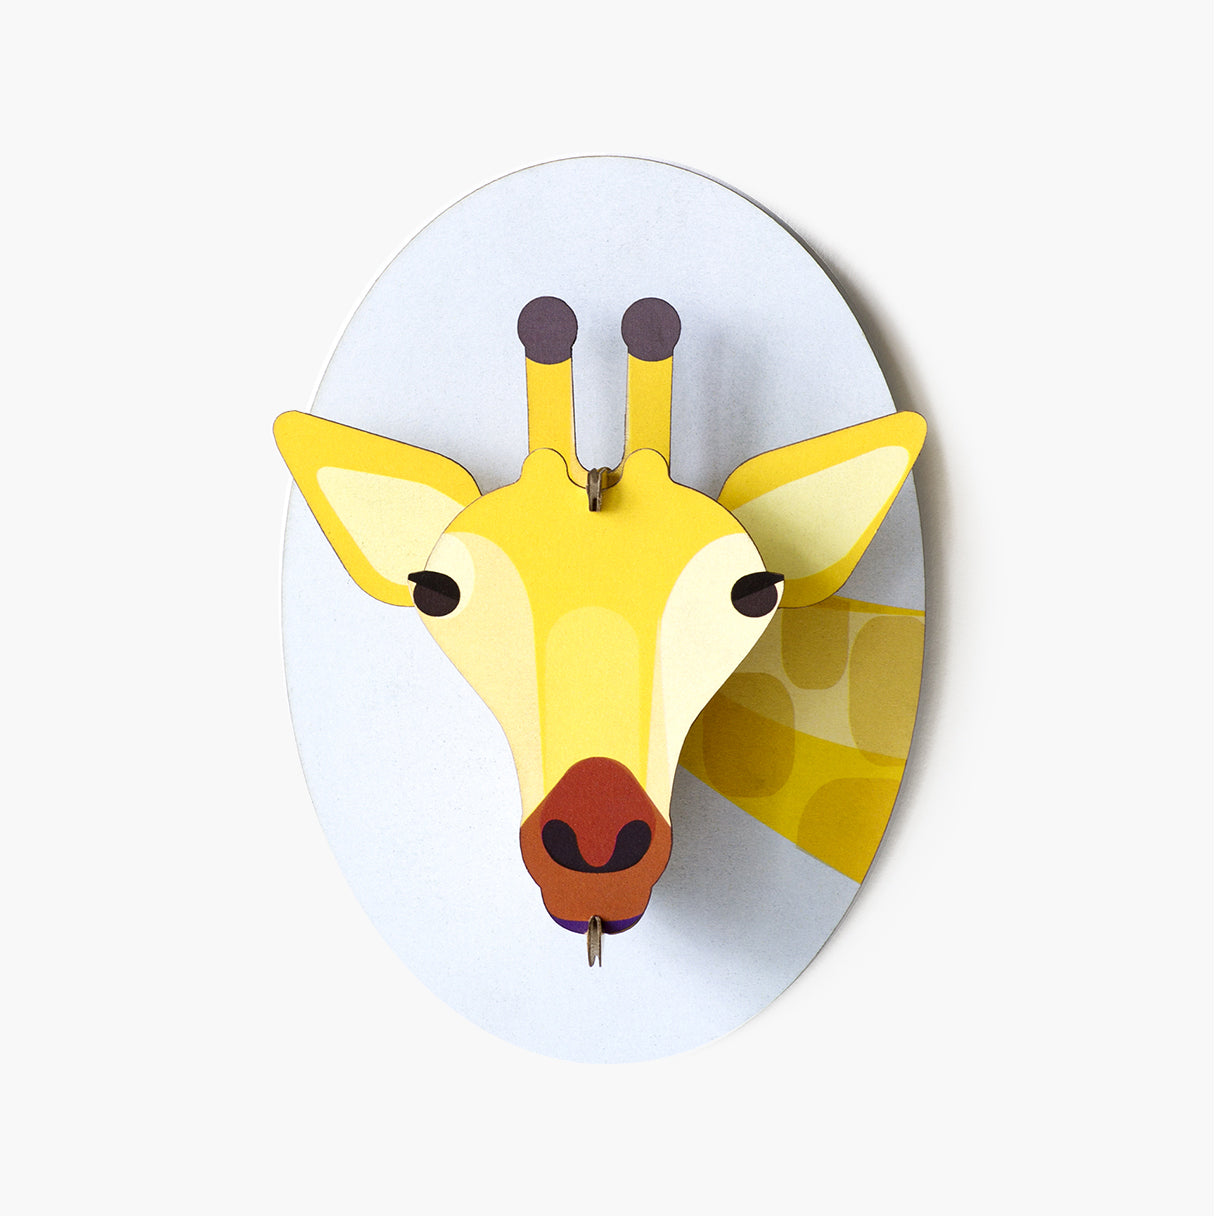 Pop Out Animal Head Wall Art - BALTIC Shop